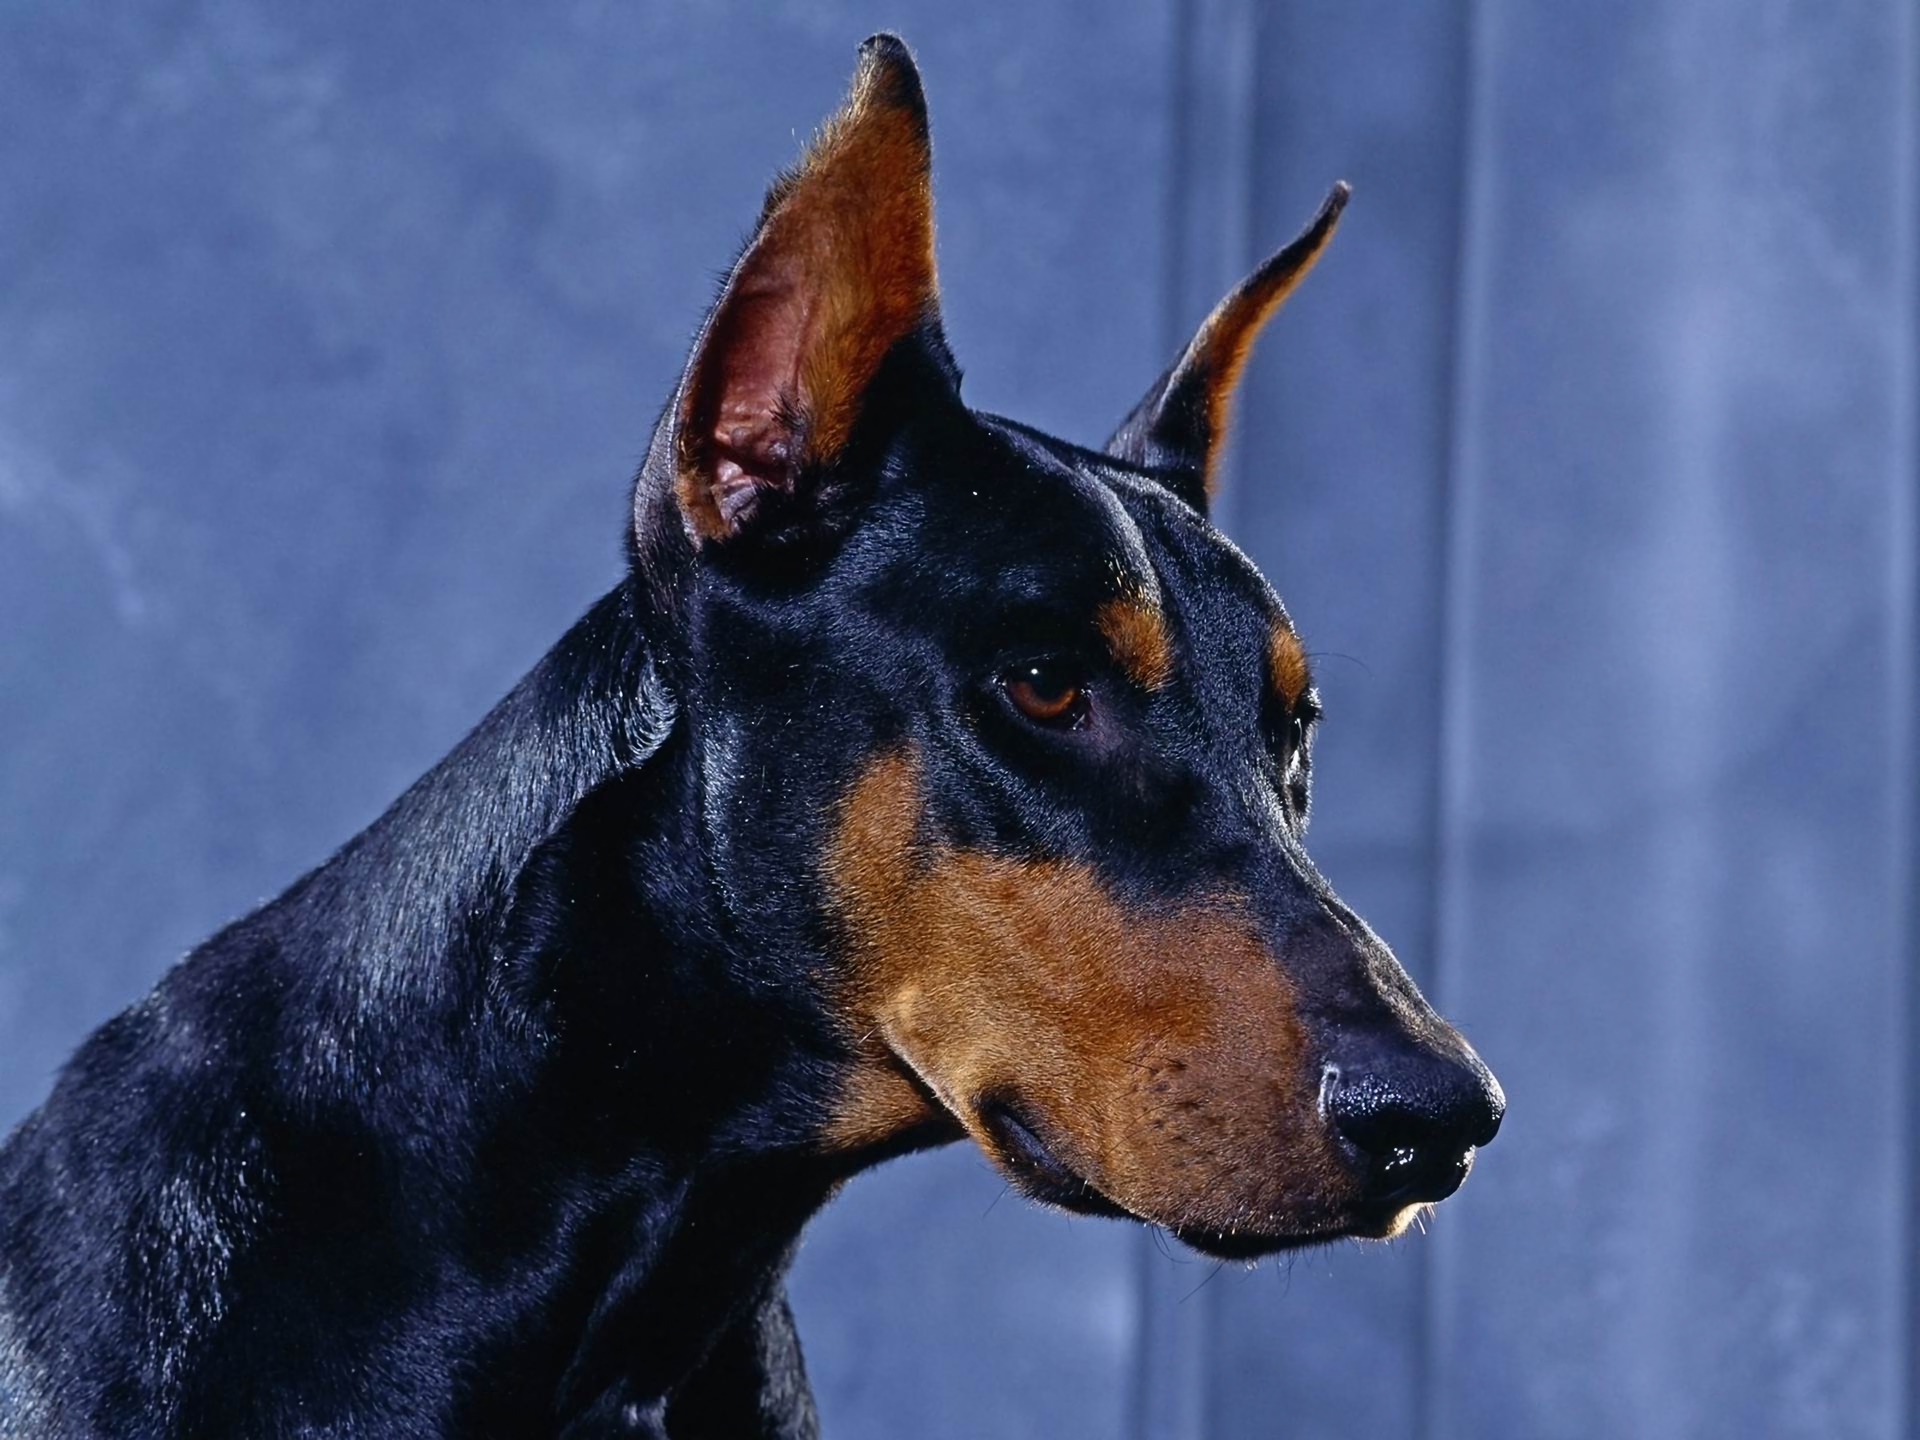 Doberman, 03.05.15 | Photos PC Gallery, 2717.34 Kb